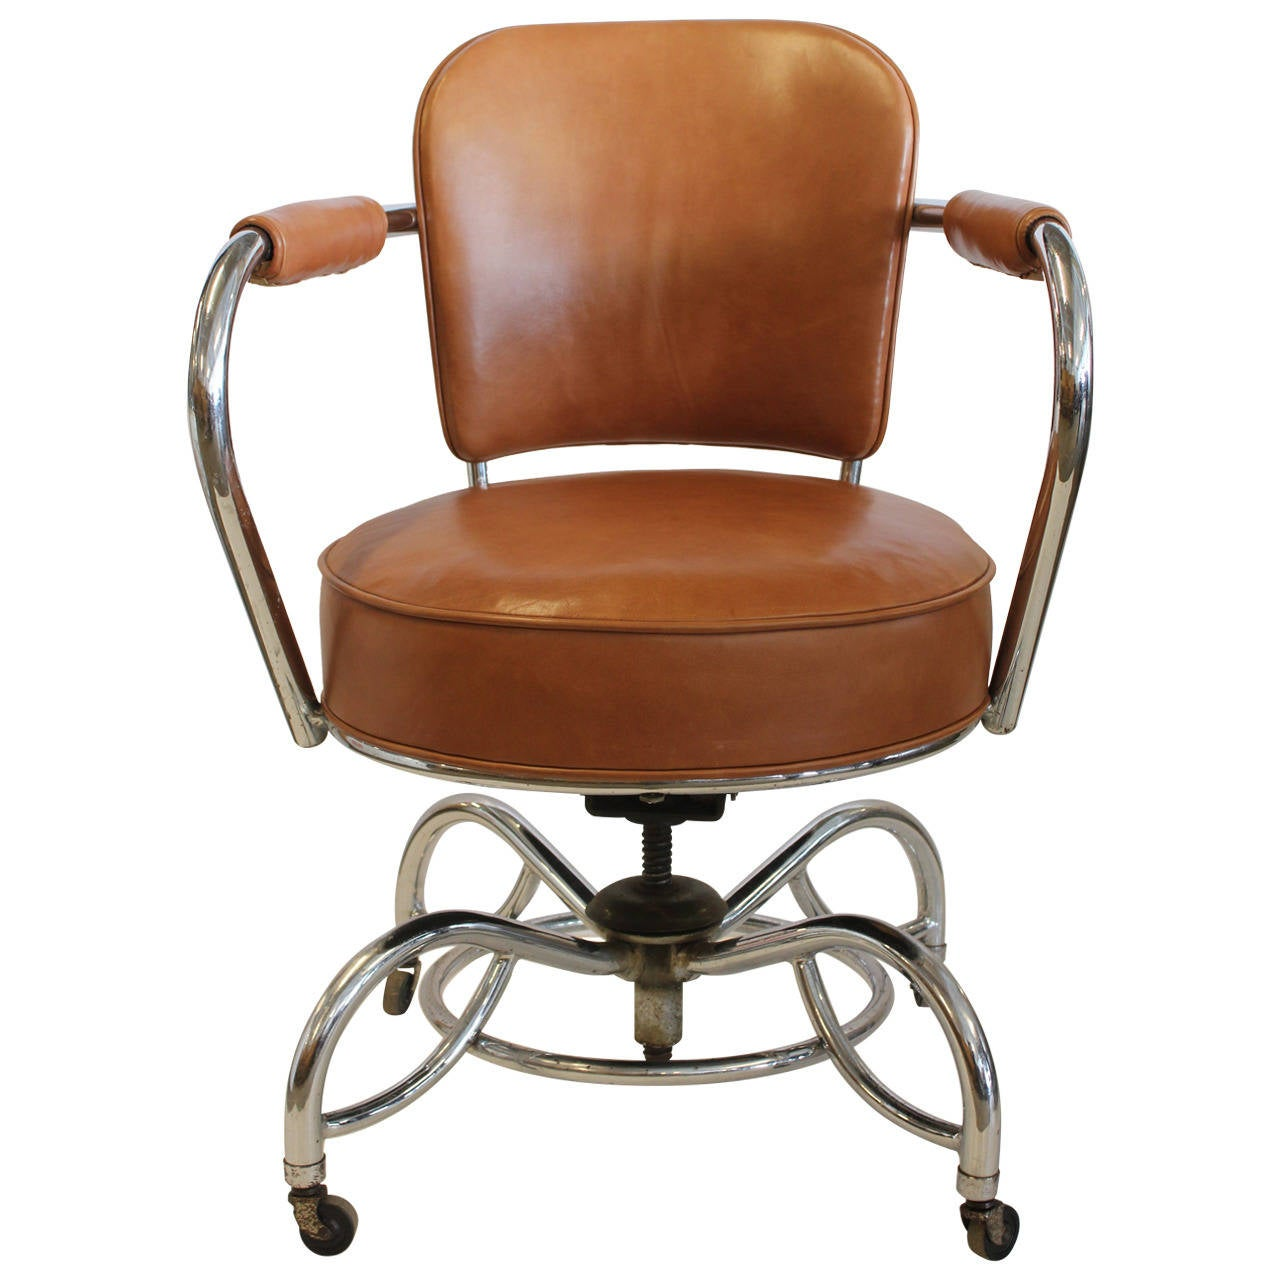 Stylish Desk stylish art deco leather and chrome desk chair at 1stdibs